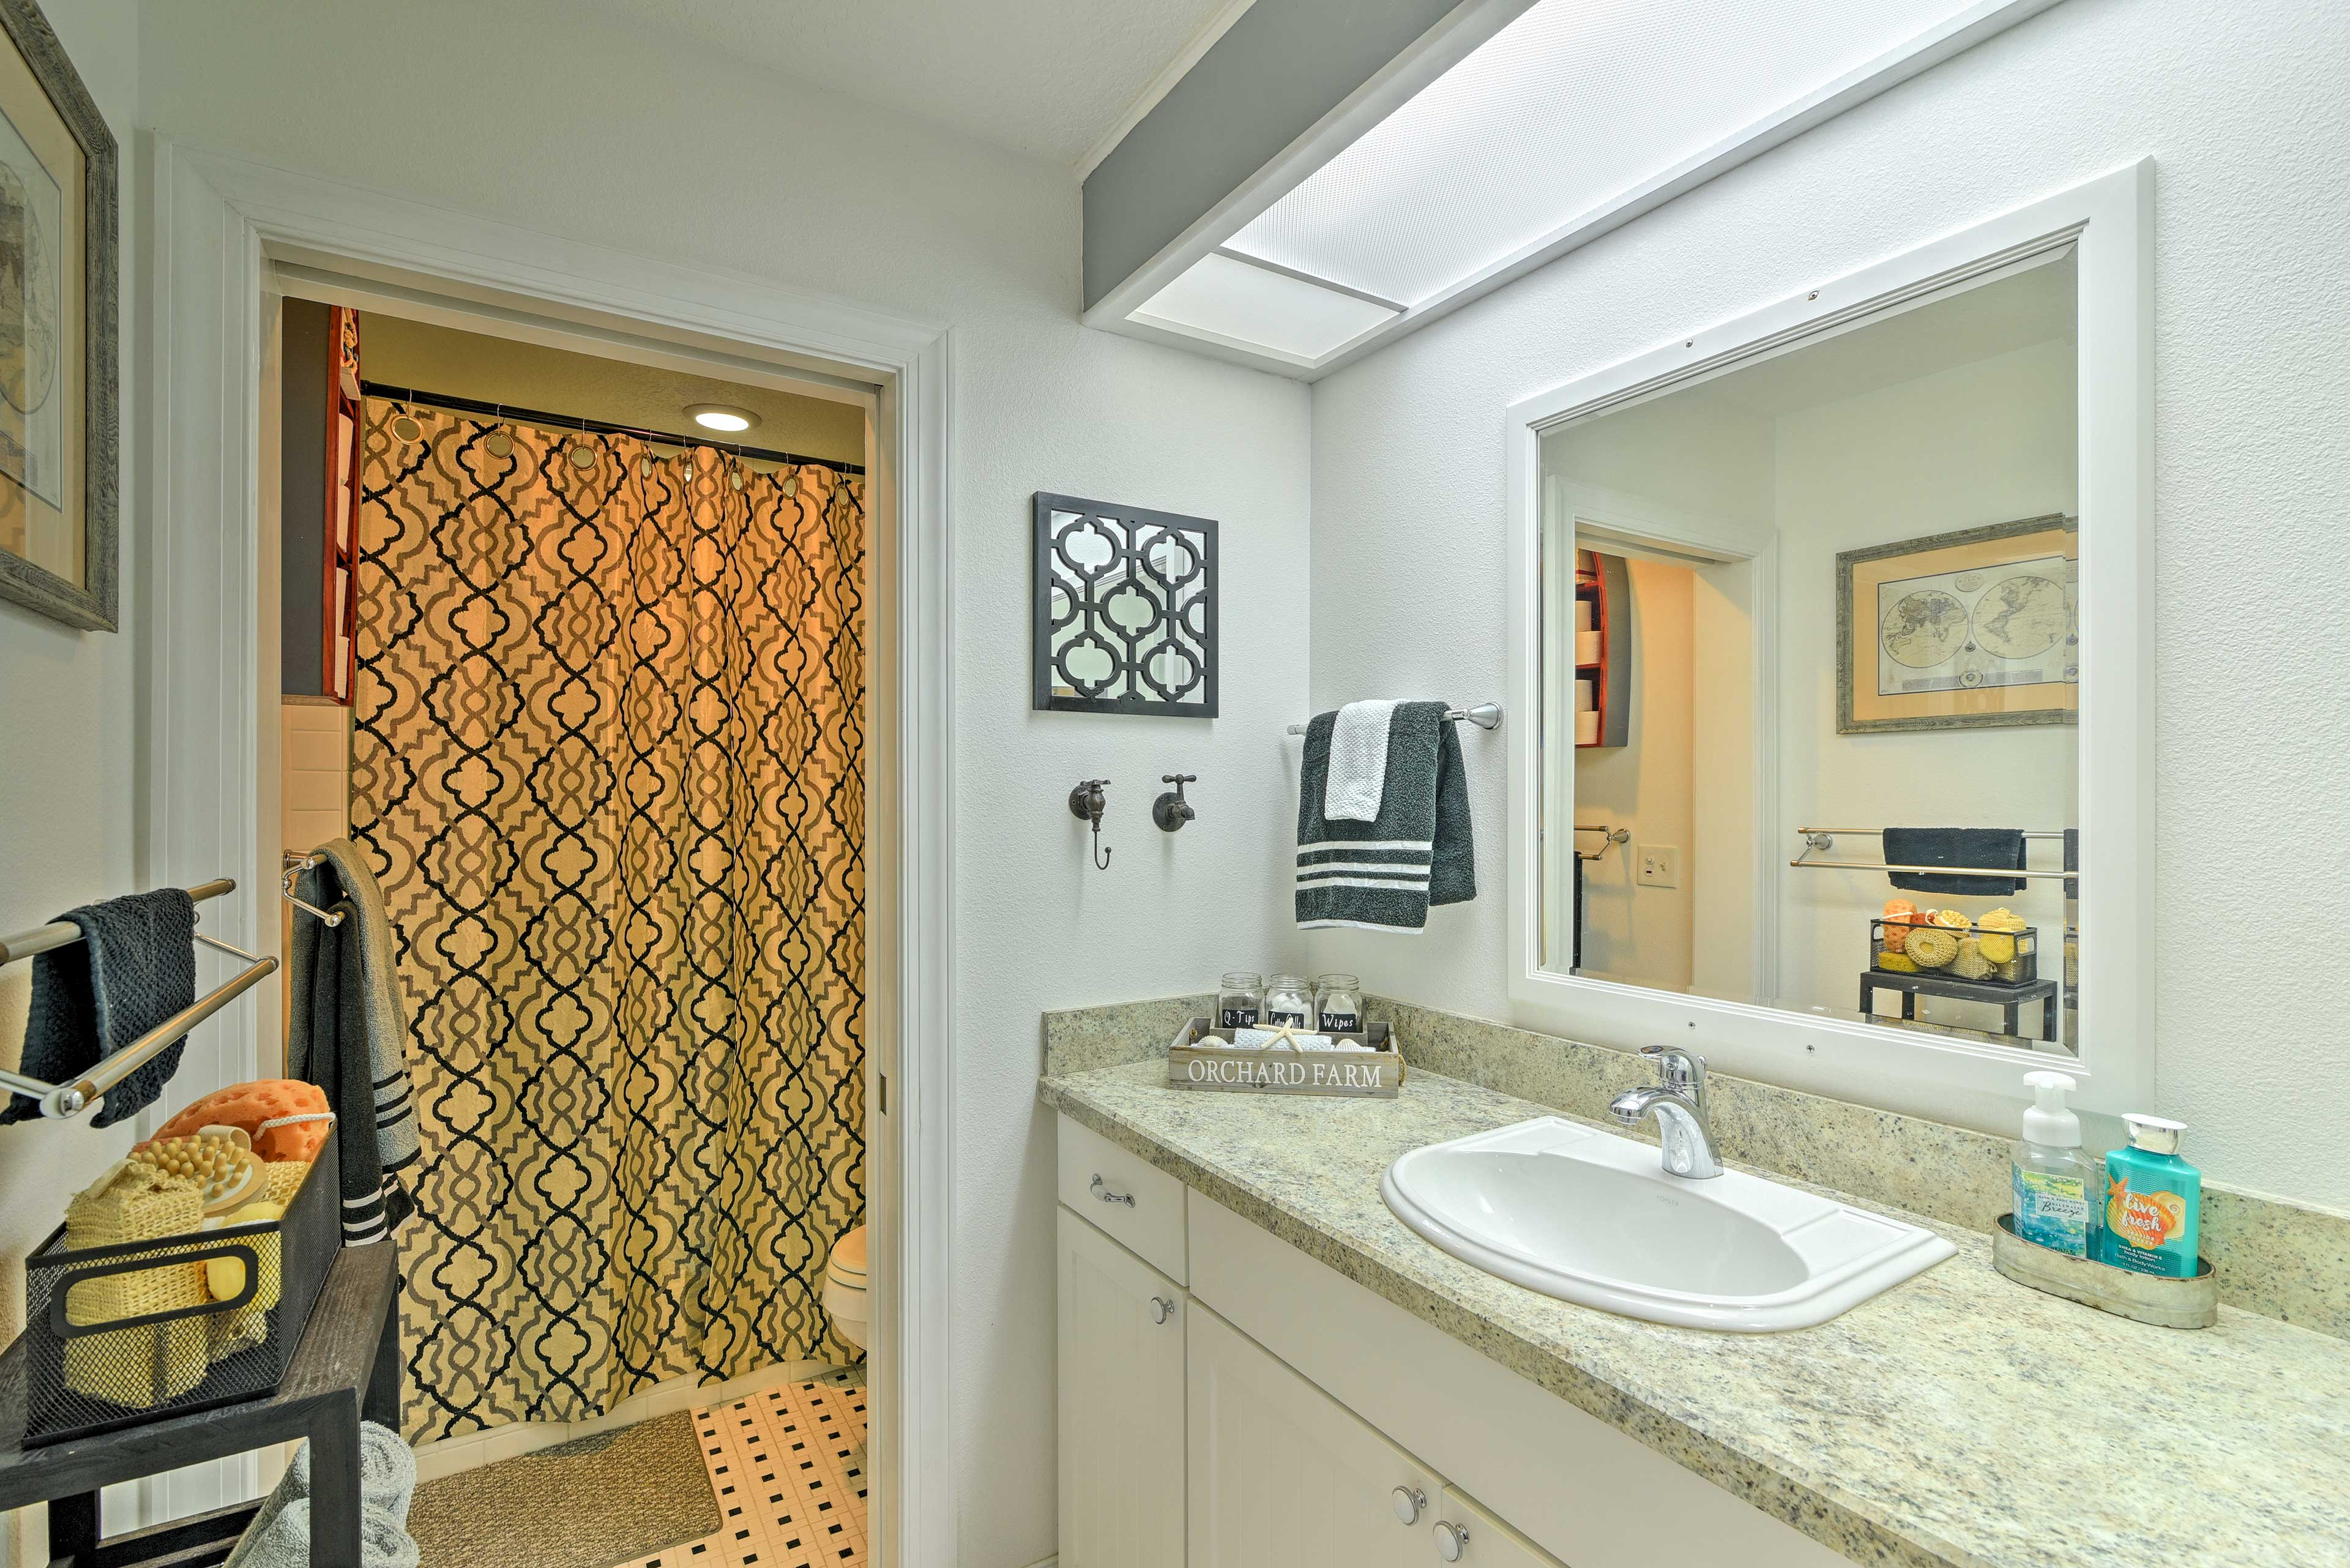 Both of the home's bathrooms feature walk-in showers.